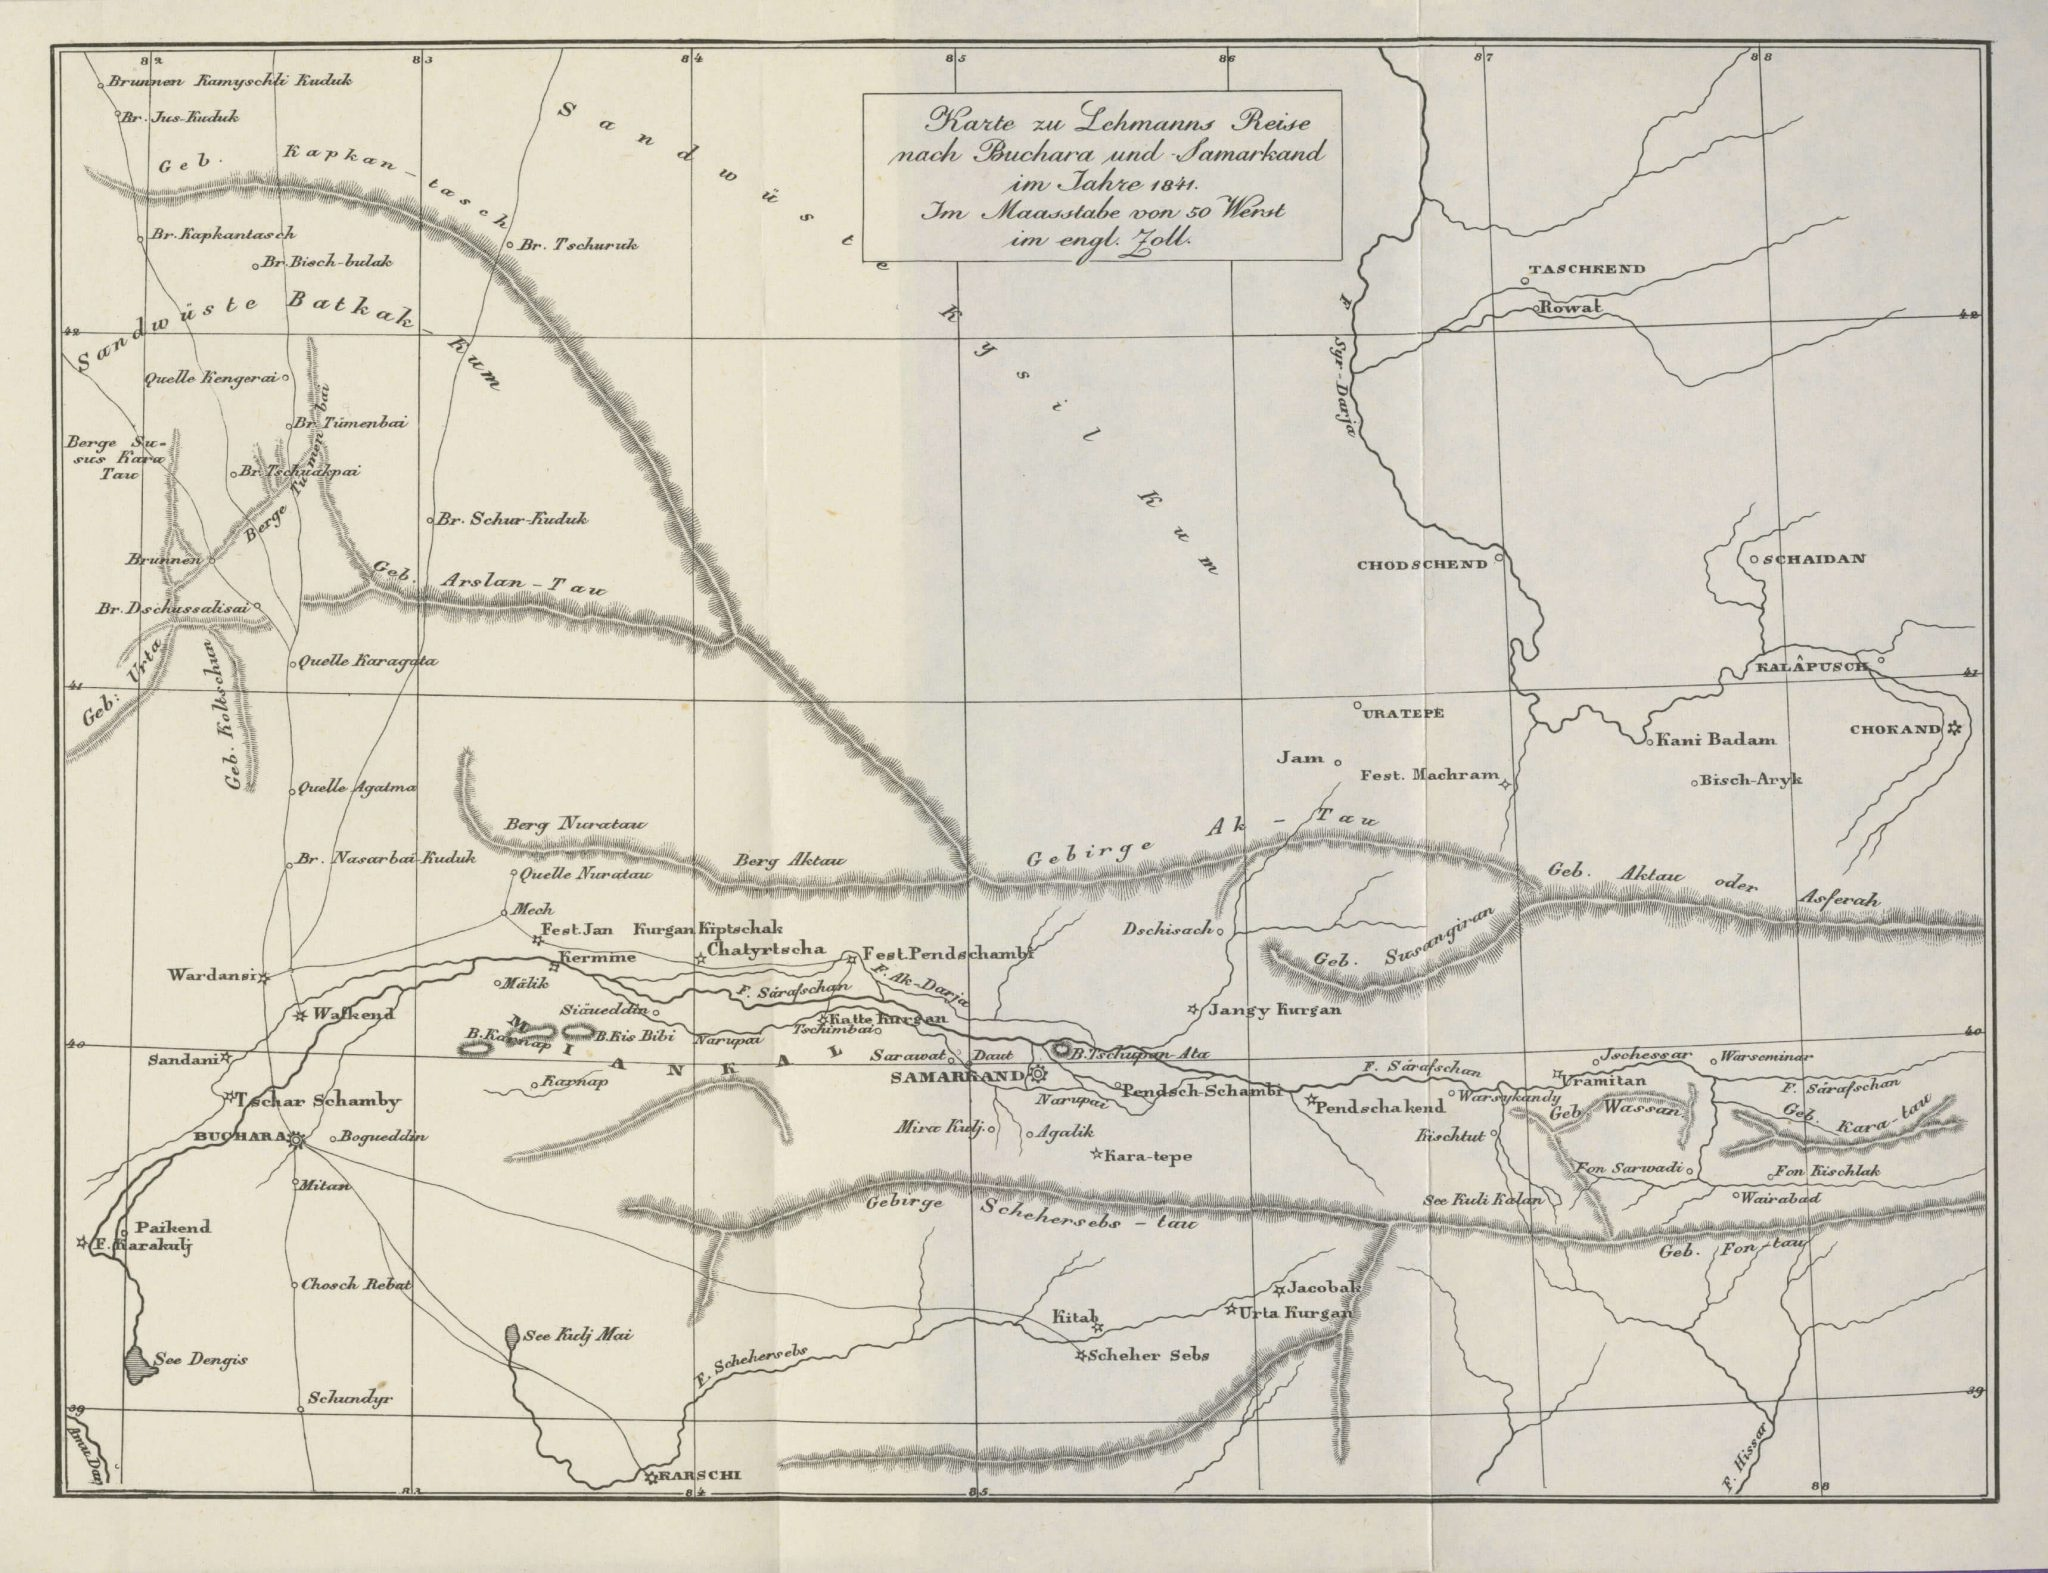 The travel route of Lehmanns to Bukhara and Samarkand in 1841